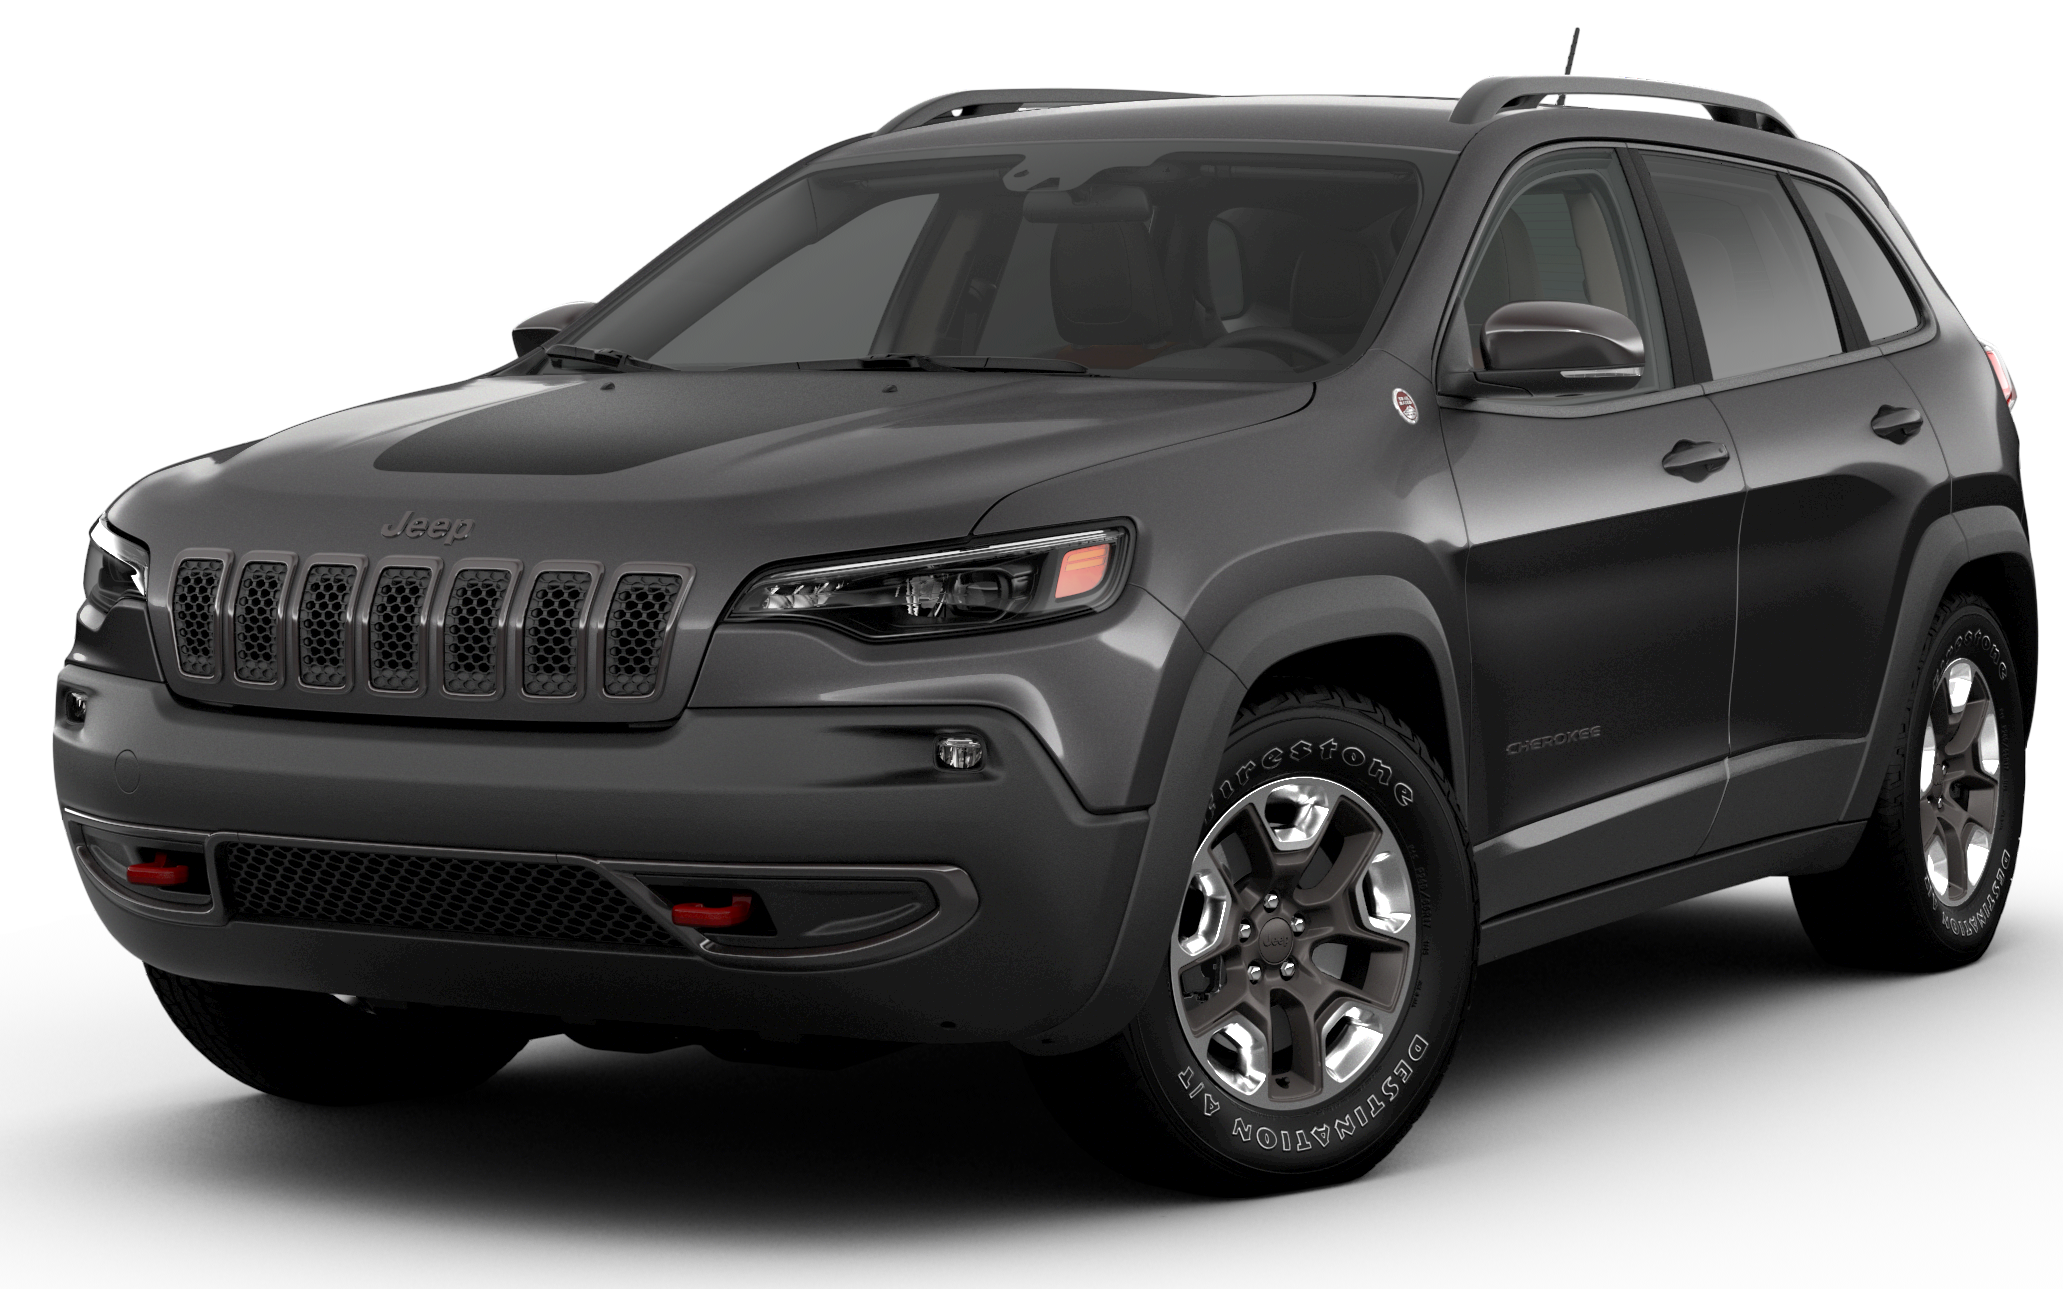 Review & Compare Jeep Cherokee at Larry H. Miller Chrysler Jeep Dodge Ram Surprise